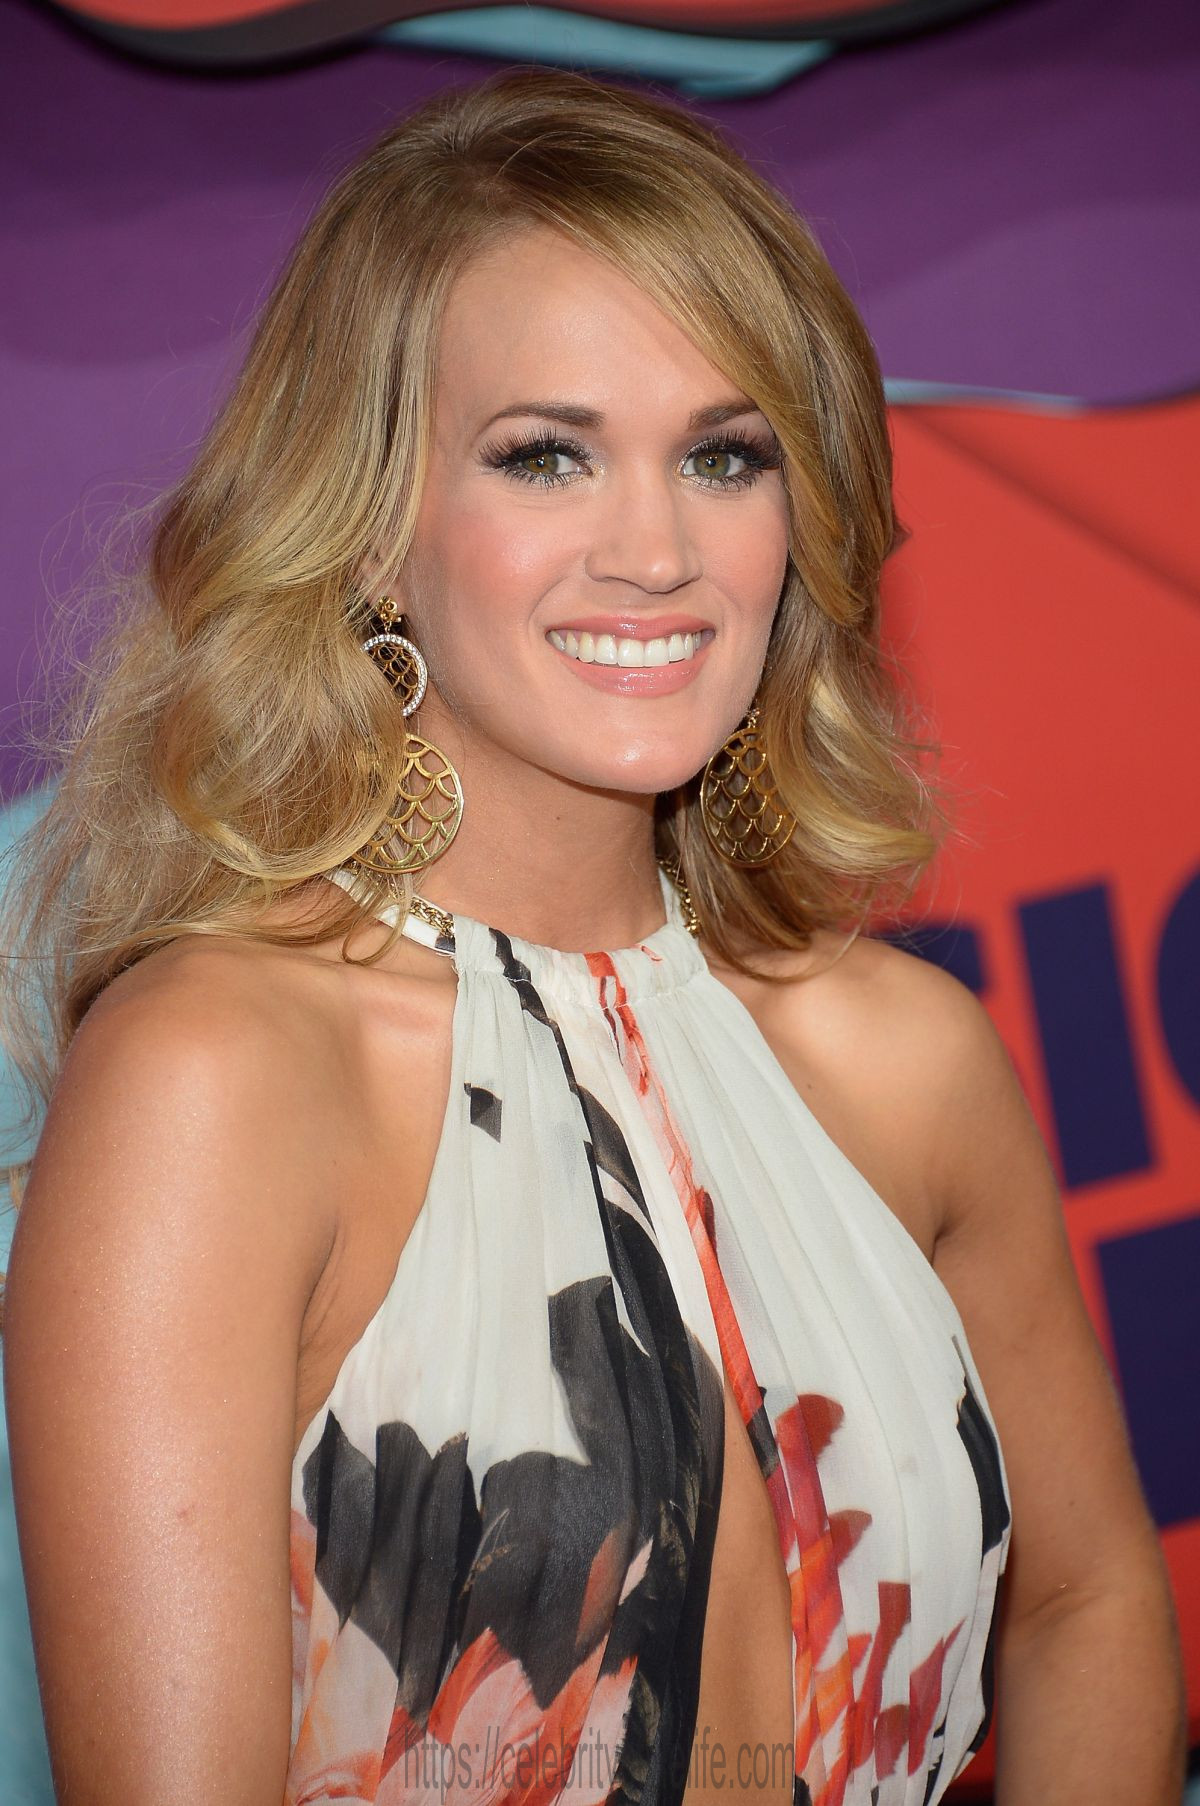 Carrie Underwood in 2014